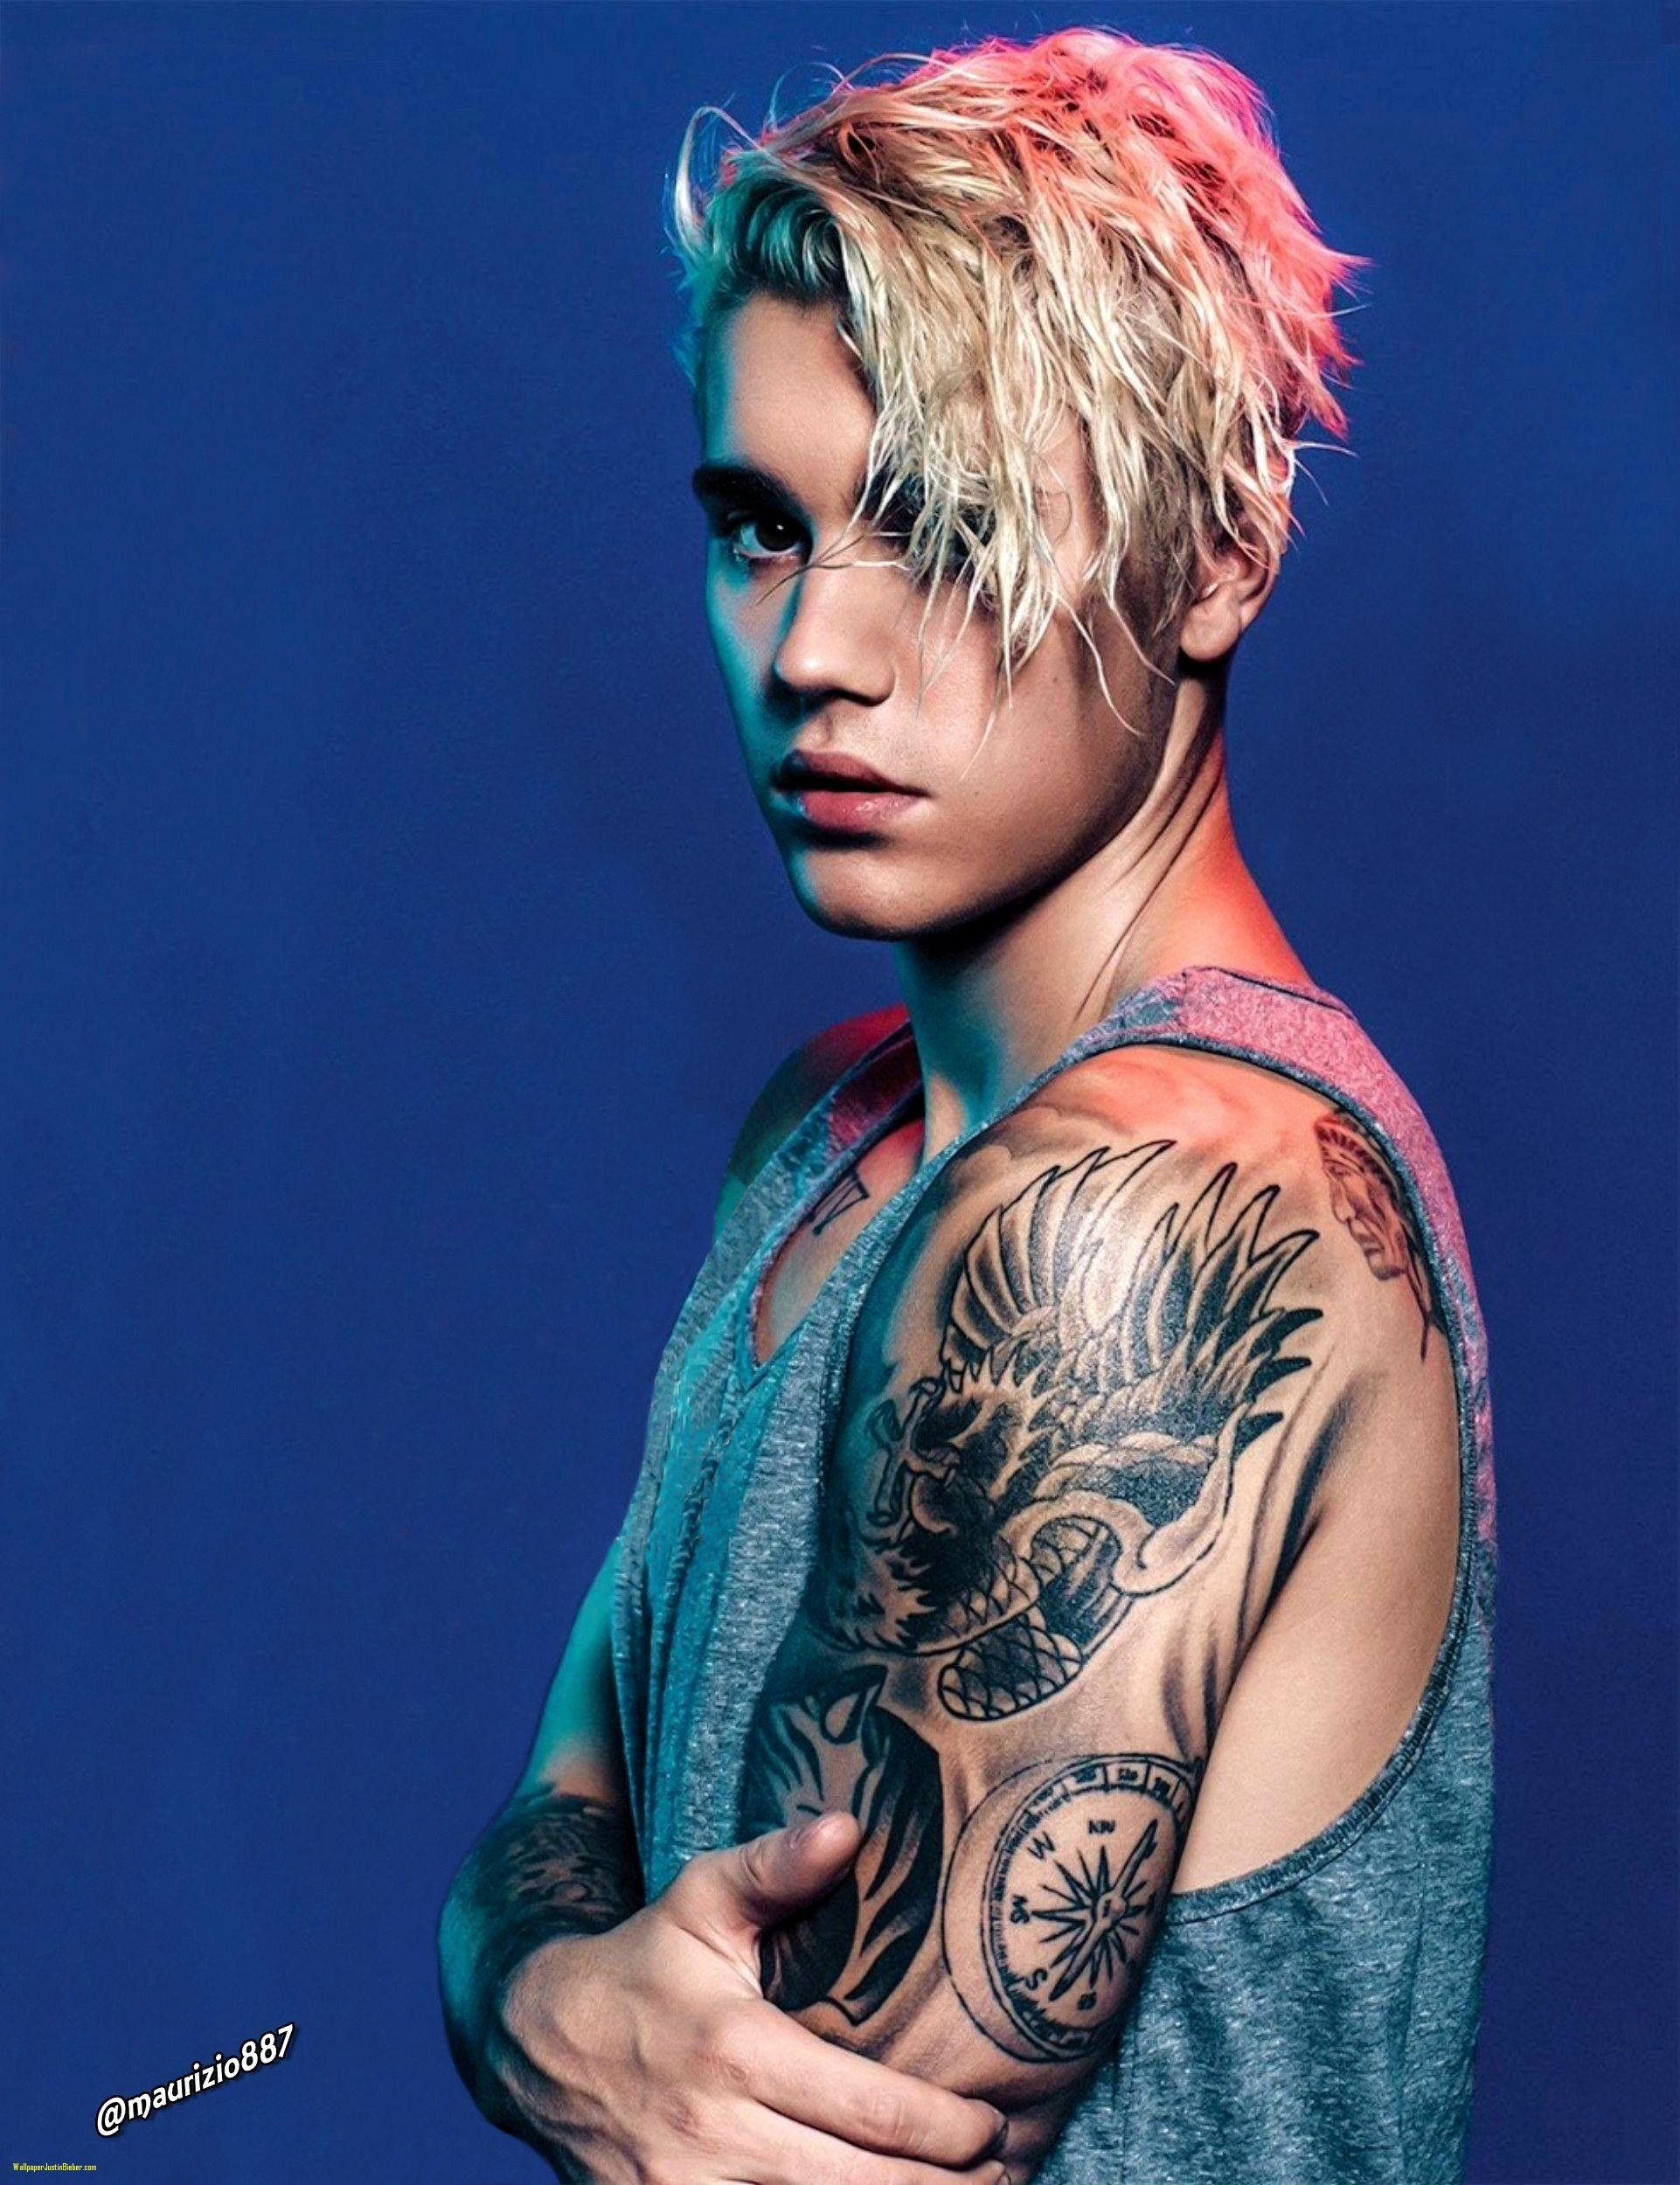 Unique Justin Bieber Background Tumblr 2015 Ojr7 - Wallpaper ...